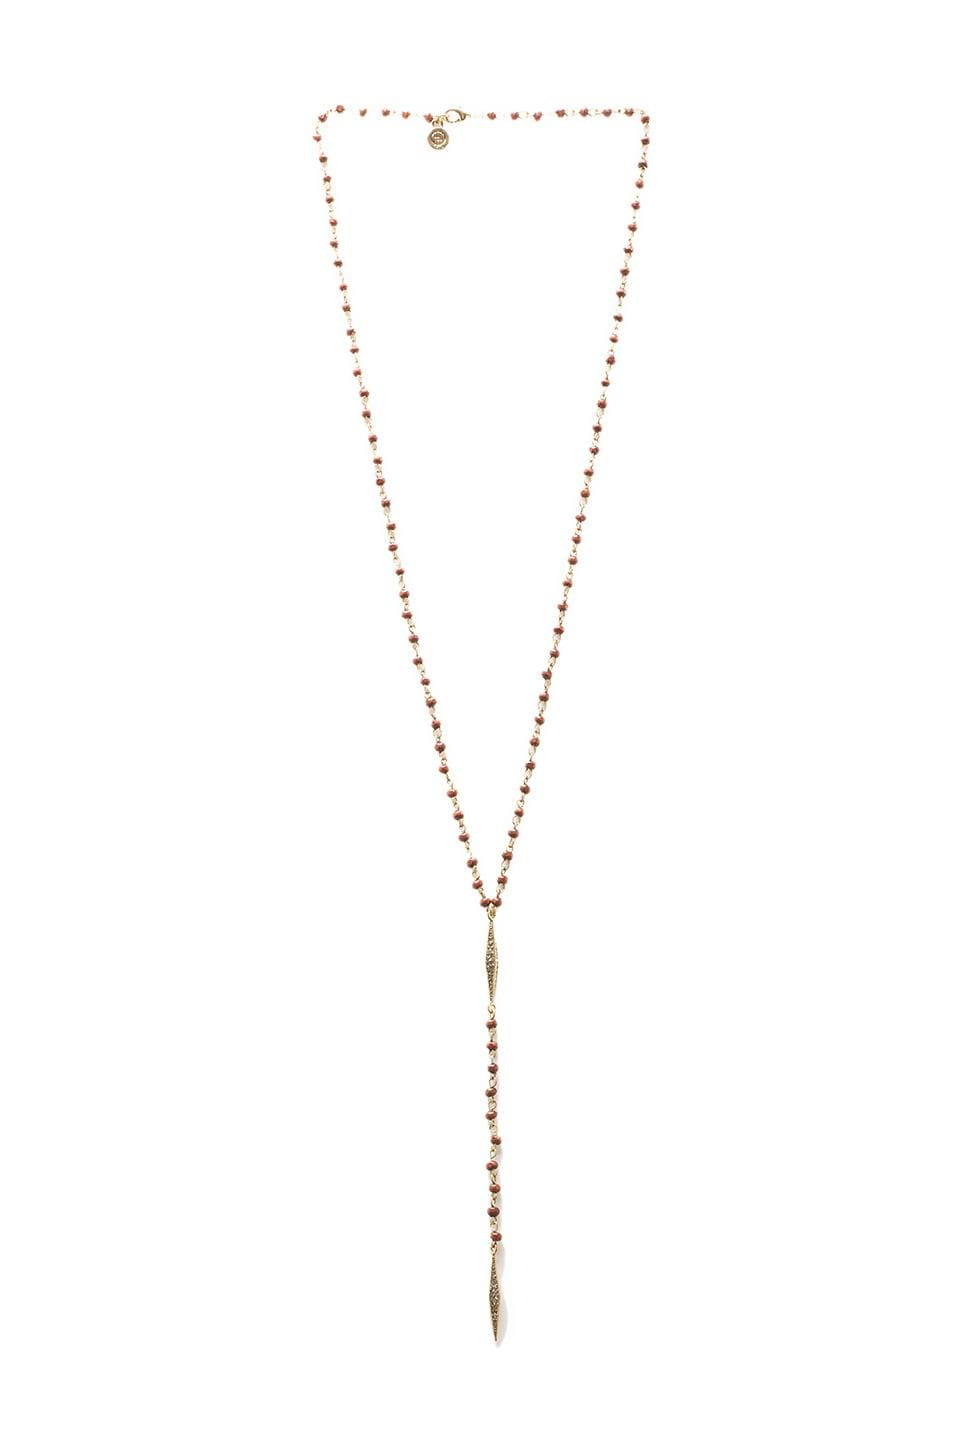 House of Harlow 1960 House of Harlow Wooden Kharma Bead Necklace in Gold